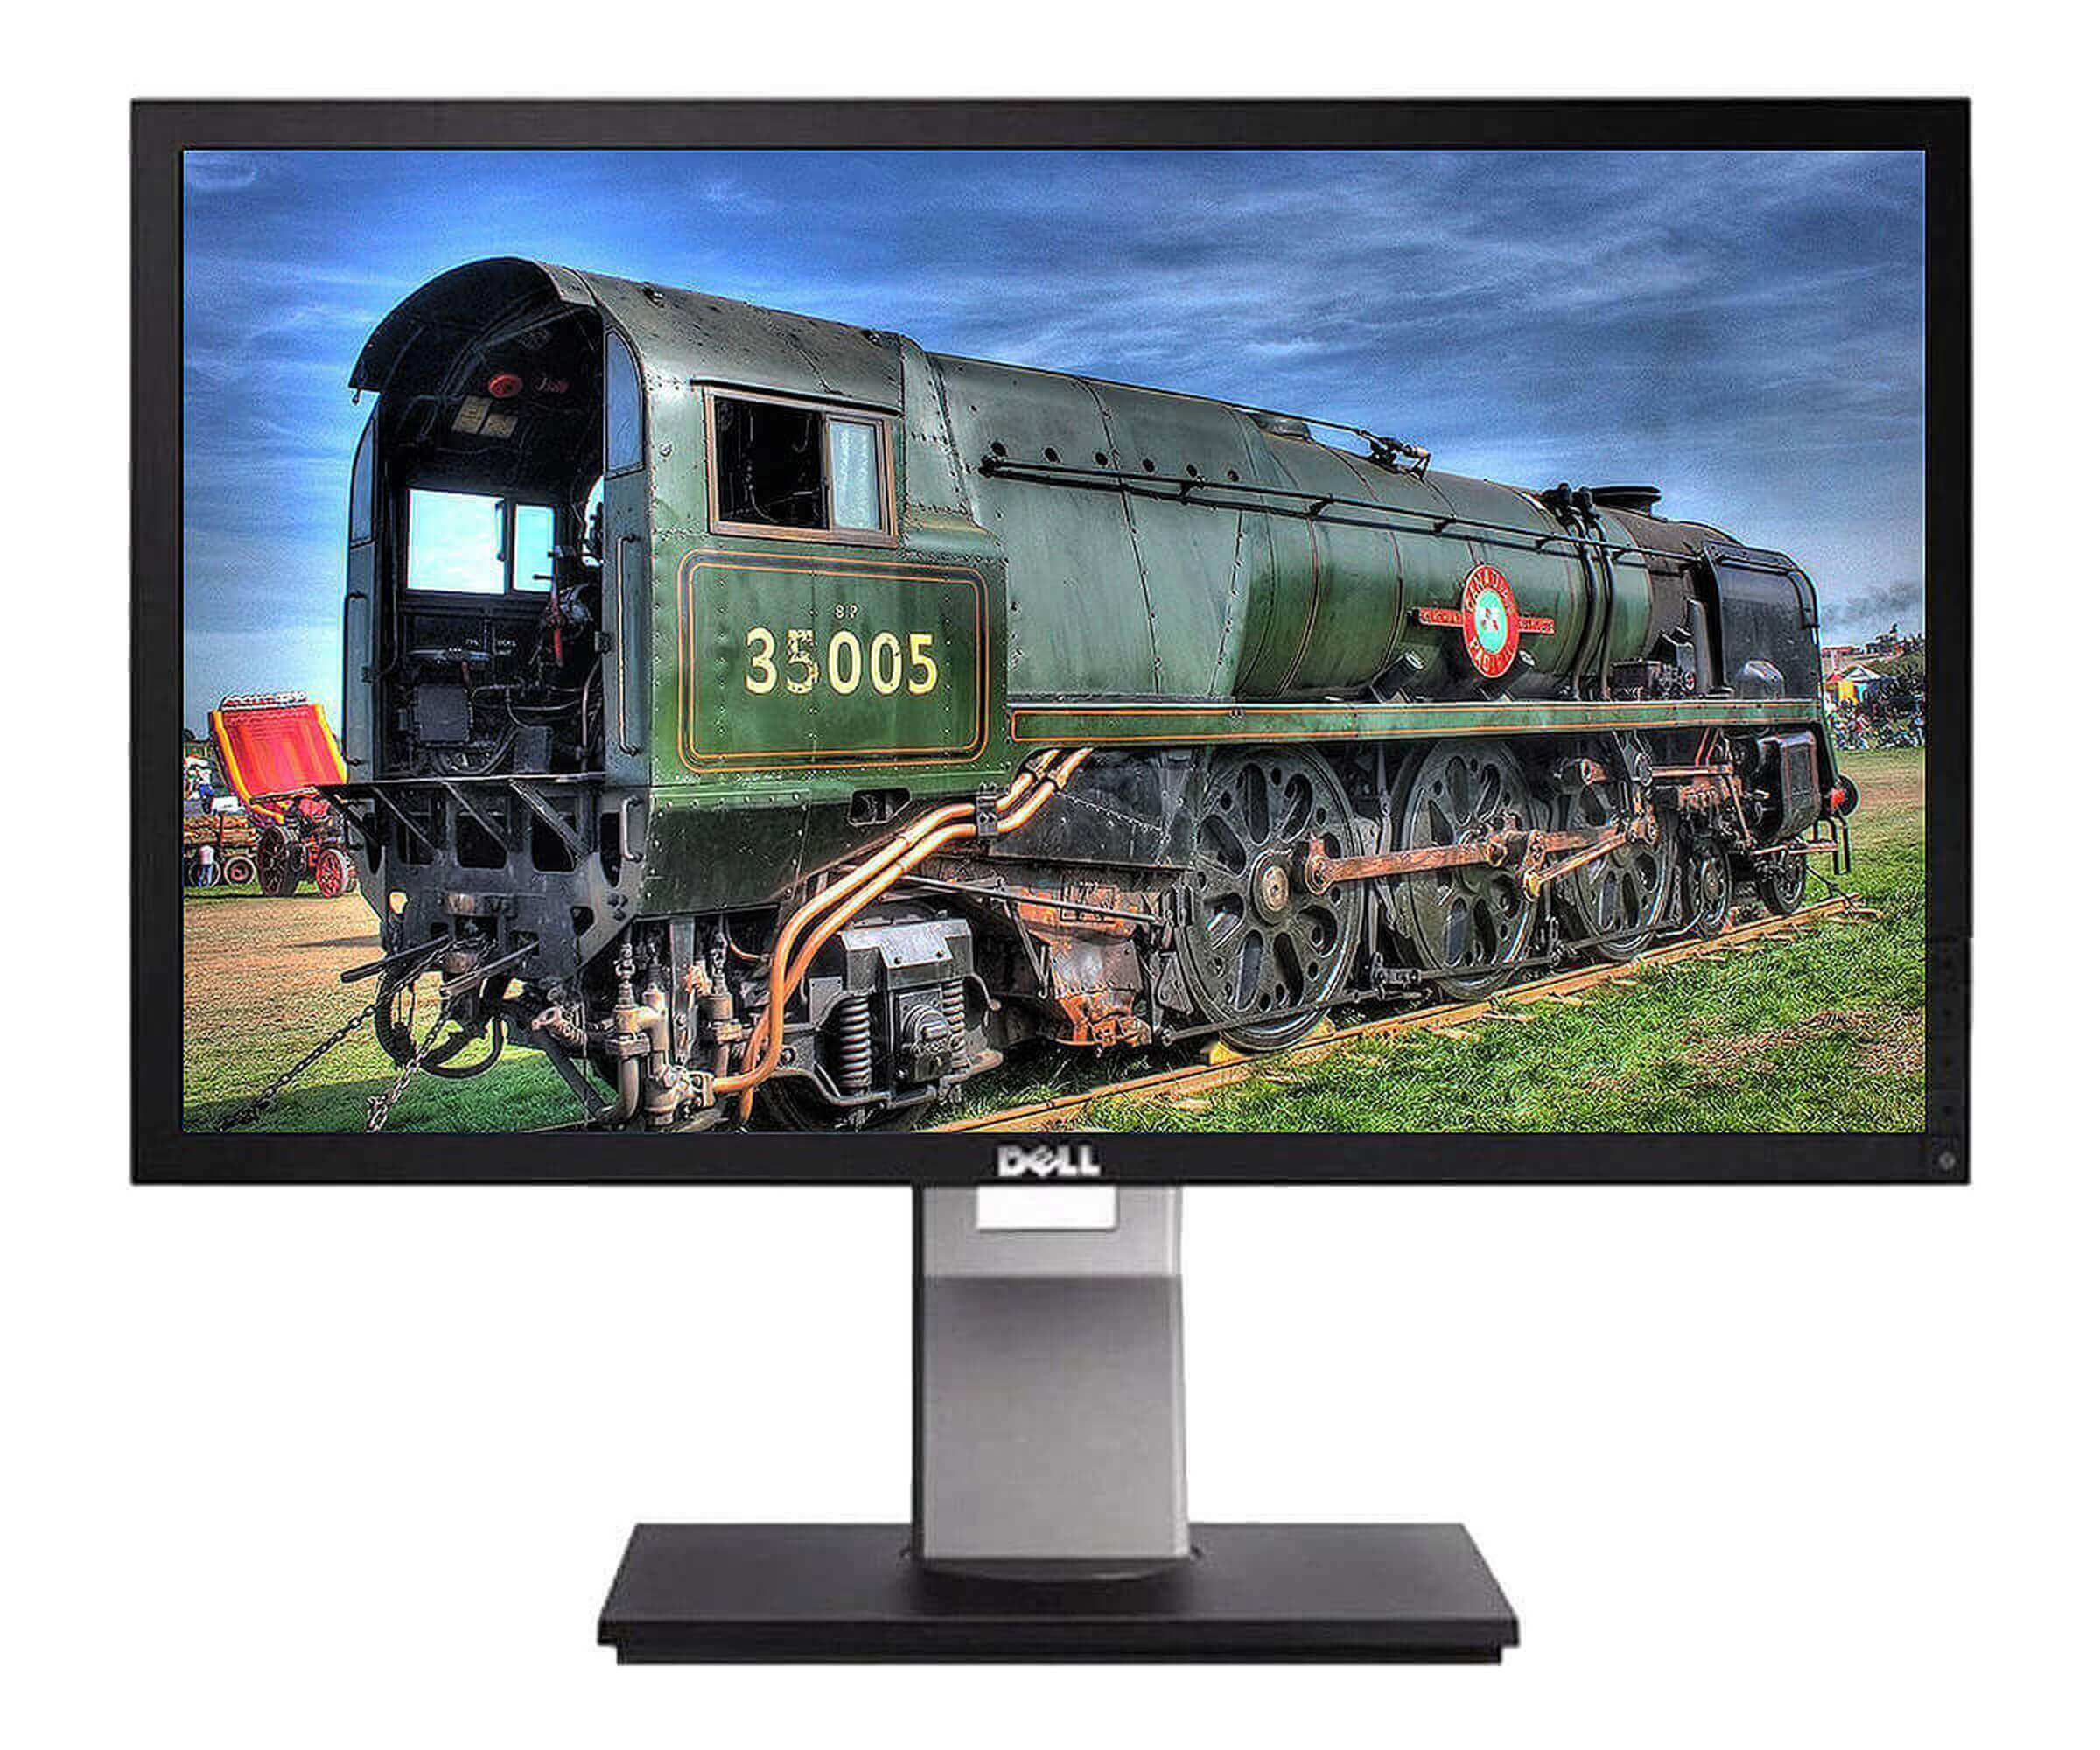 Dell Professional P2411H - LCD-Display - TFT - 61 cm ( 24 ) - 1920 x 1080 FullHD - 5ms